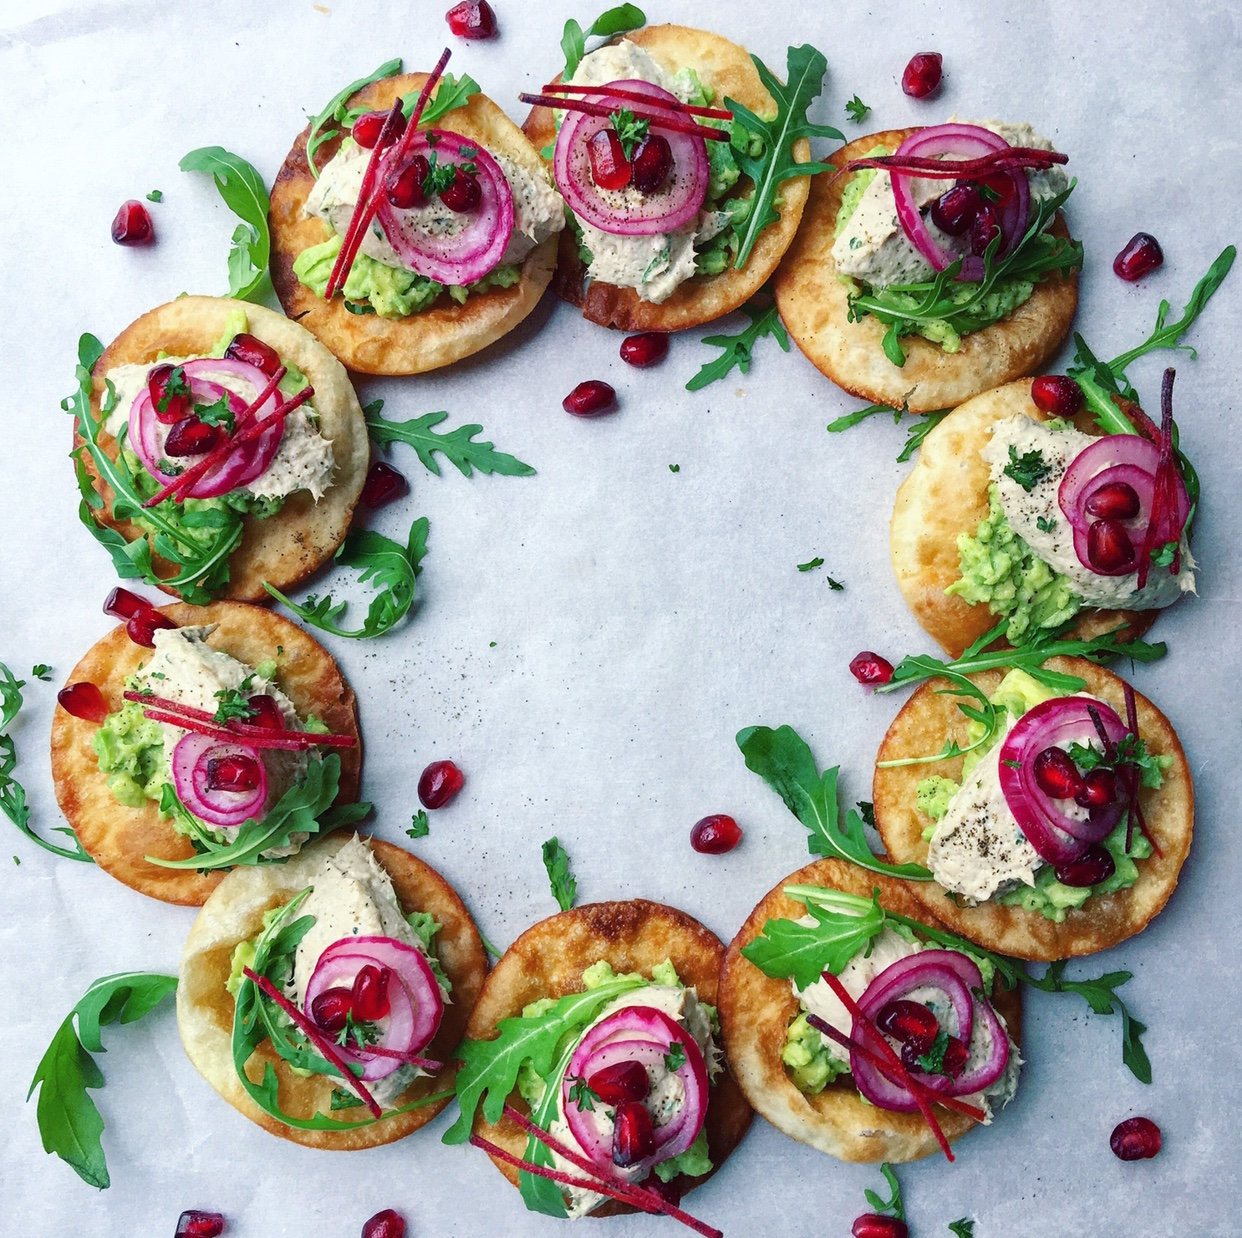 Crispy fried tortillas packed with a fresh mackerel mousse.